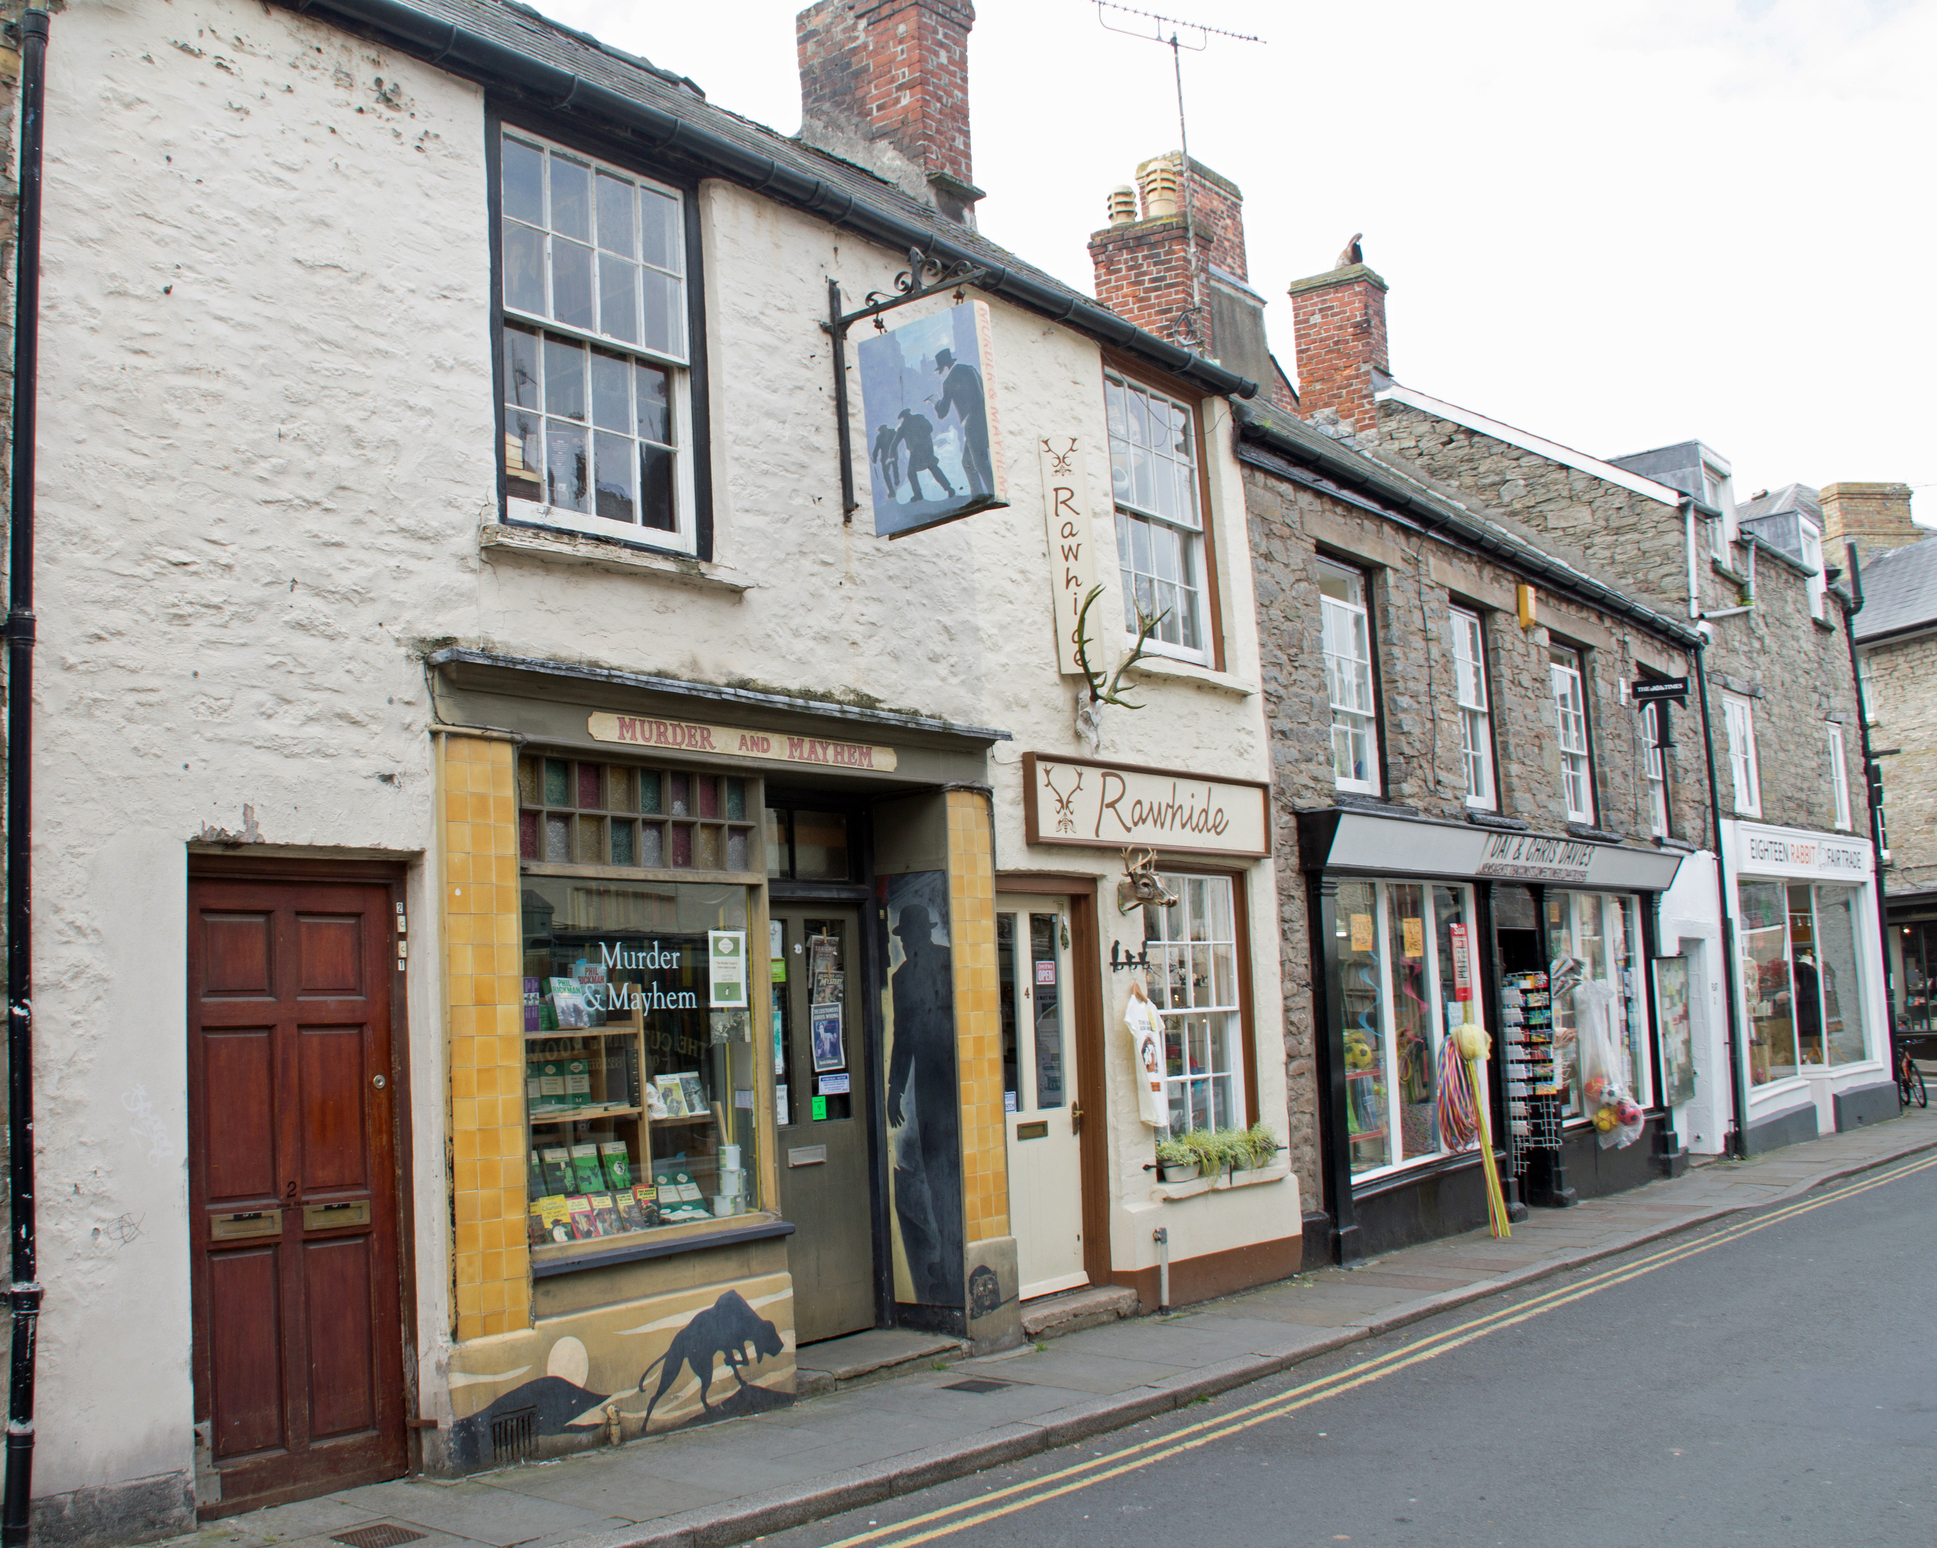 Wales-Book-shops-hay-on-wye.jpg?mtime=20190502102415#asset:105696